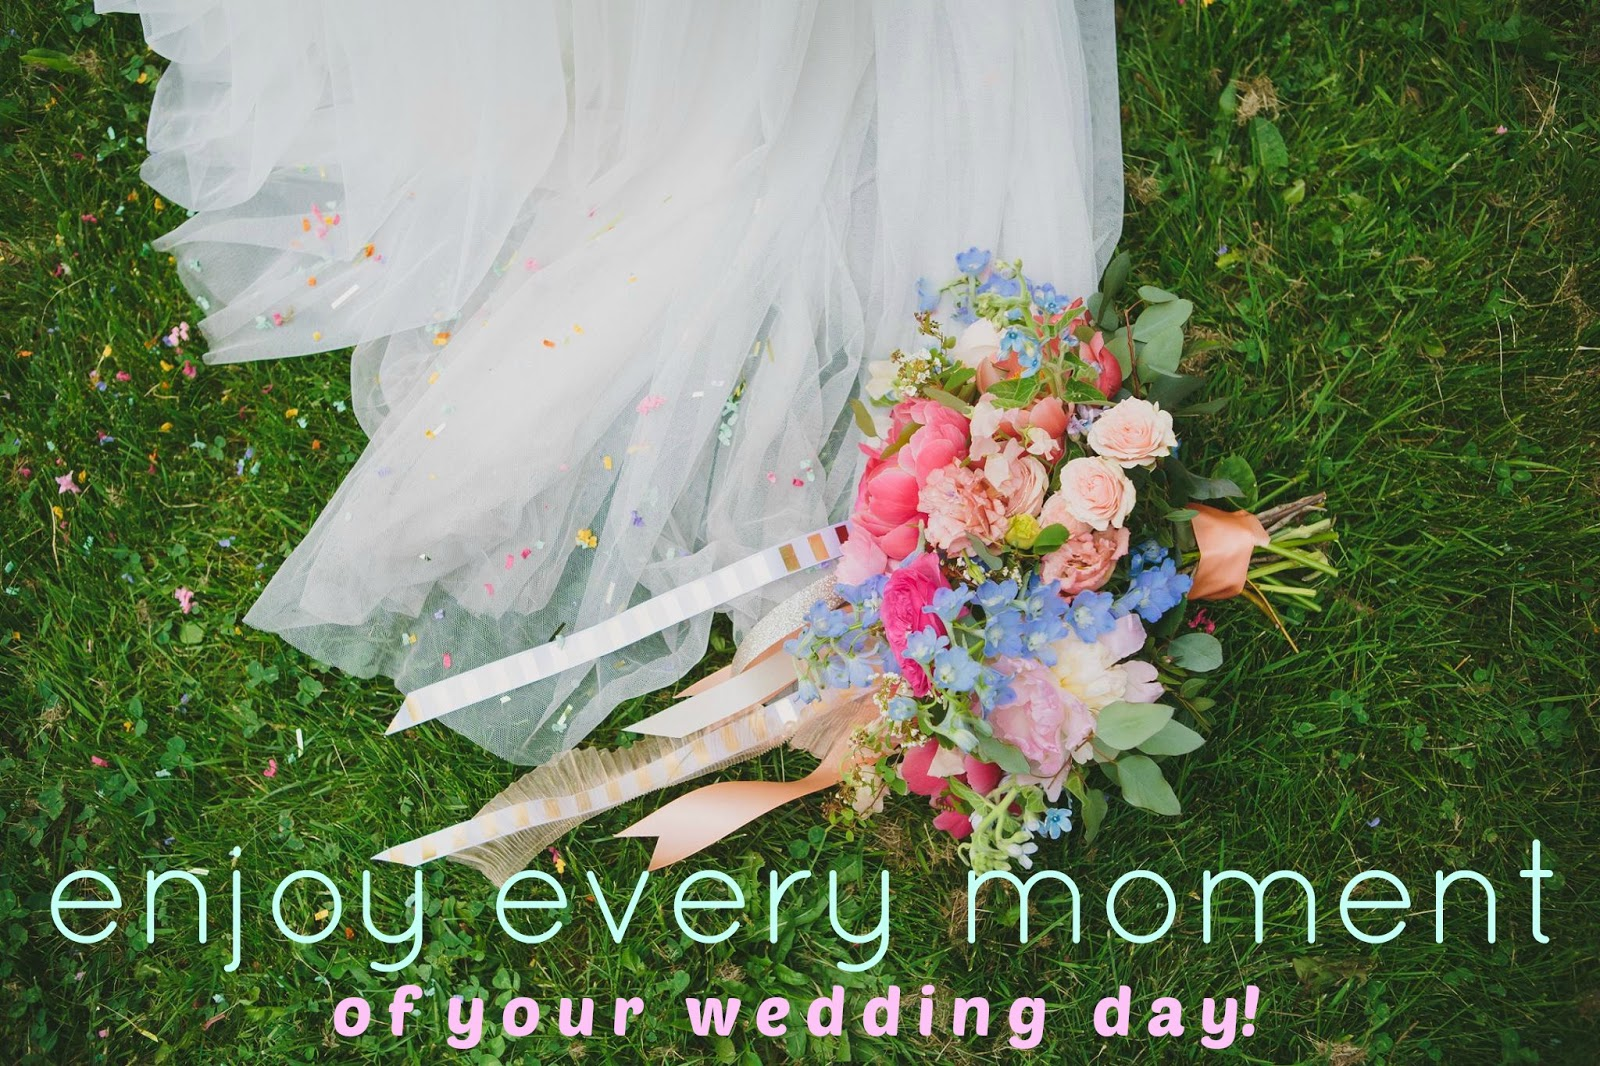 hey jules: enjoy every moment (of your wedding day)